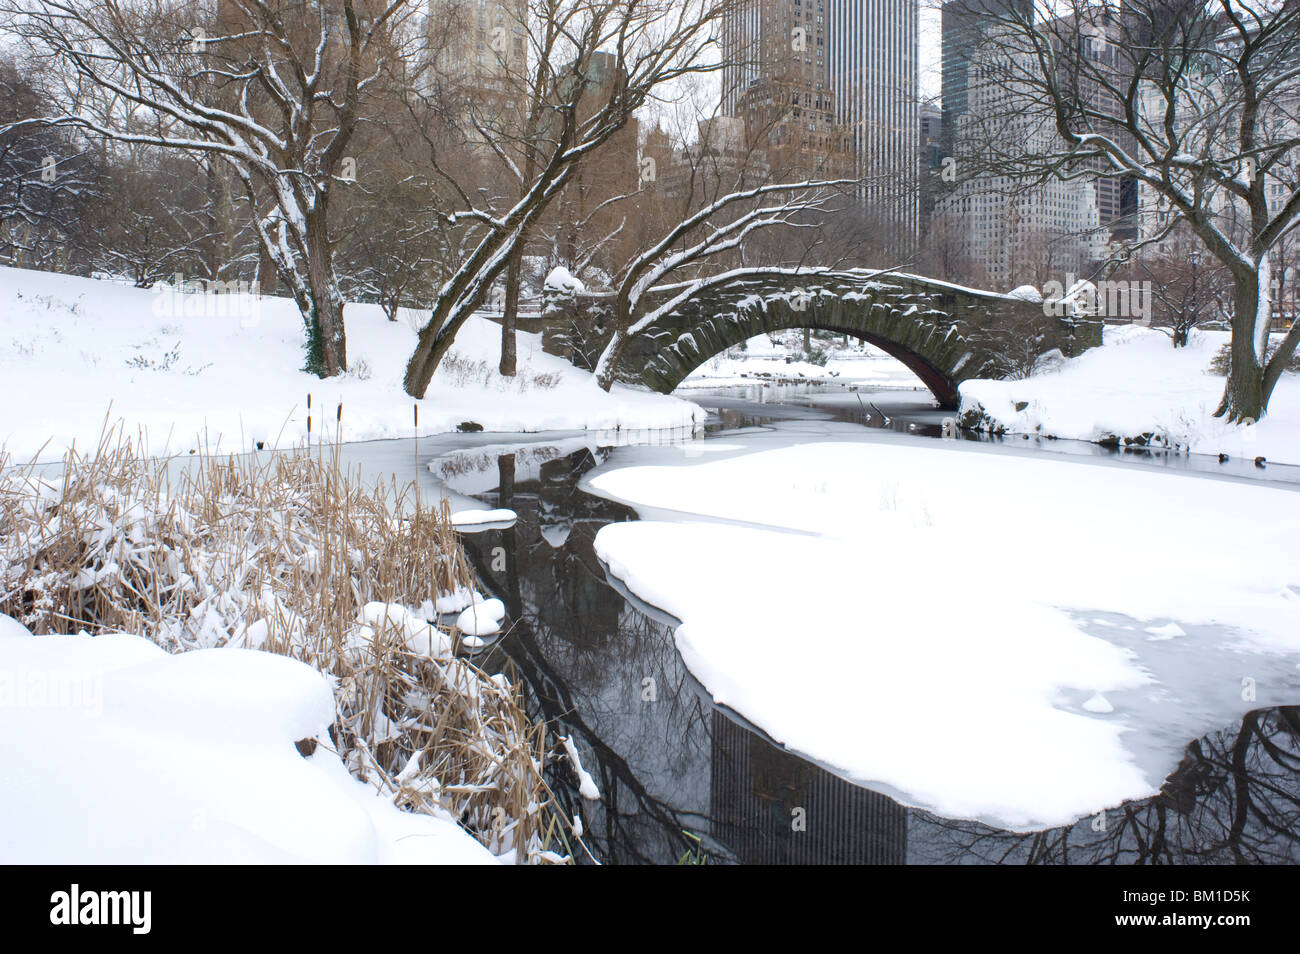 The Gapstow Bridge in early morning after a snowfall in Central Park, New York State, New York City, United States - Stock Image